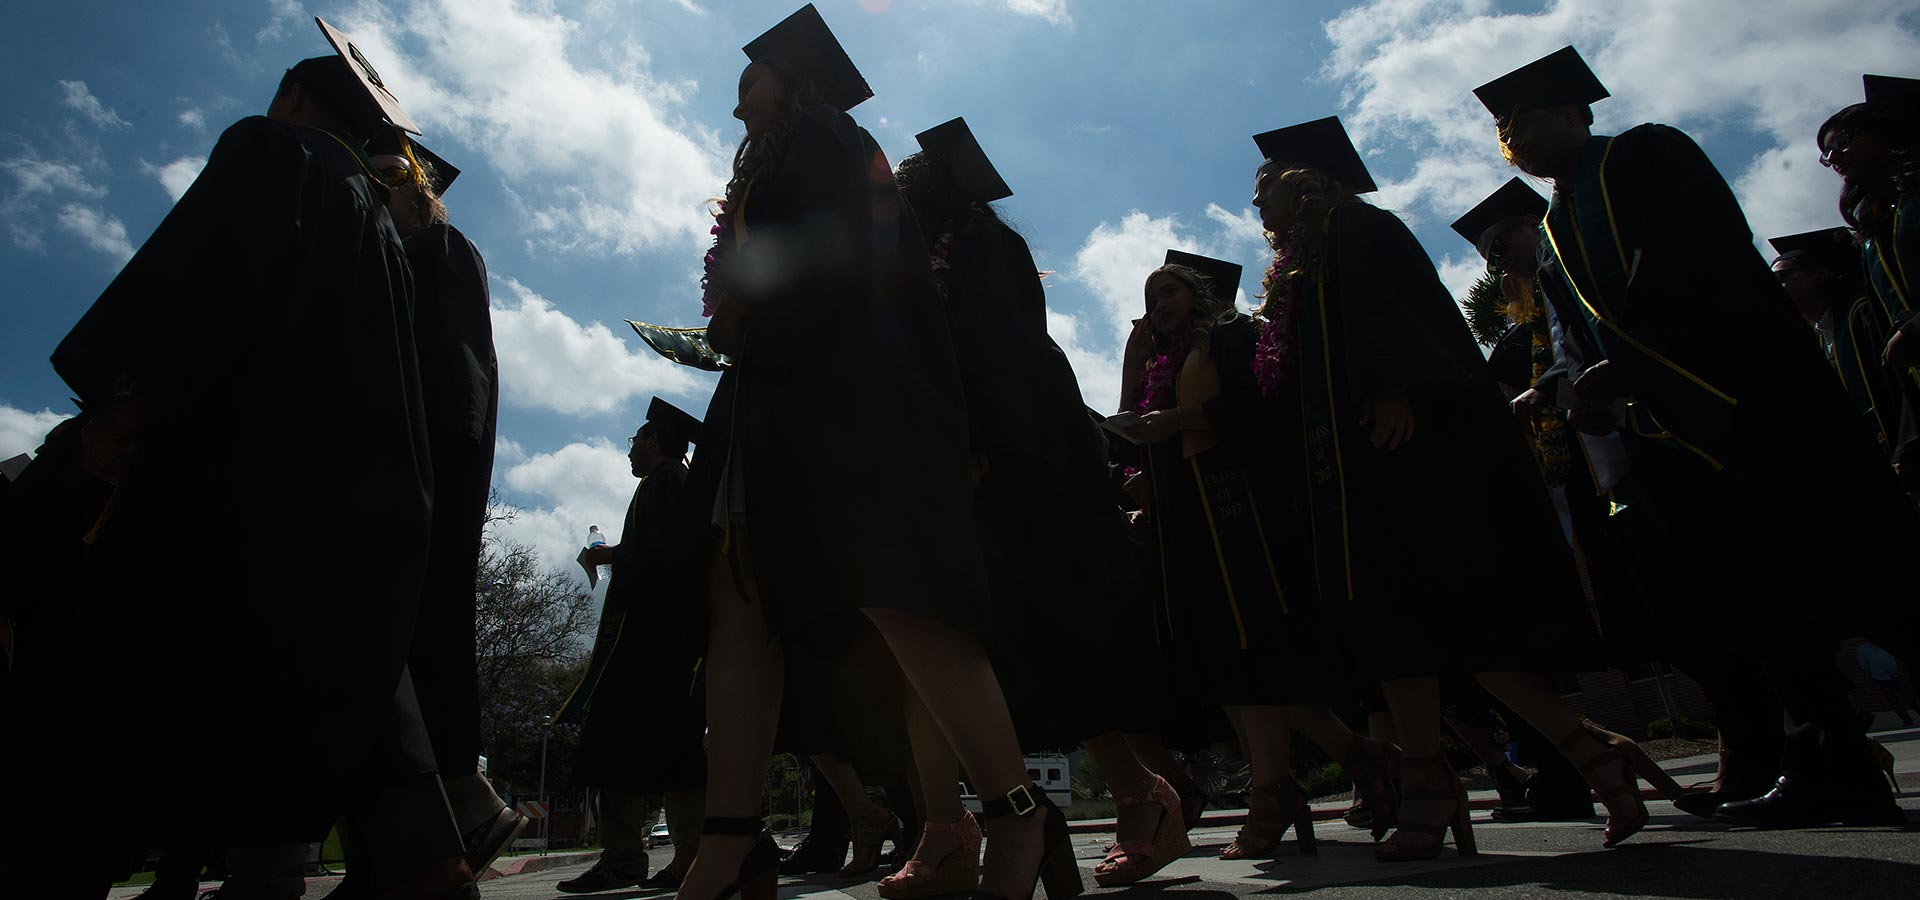 Silhouette of Students Walking during Commencement